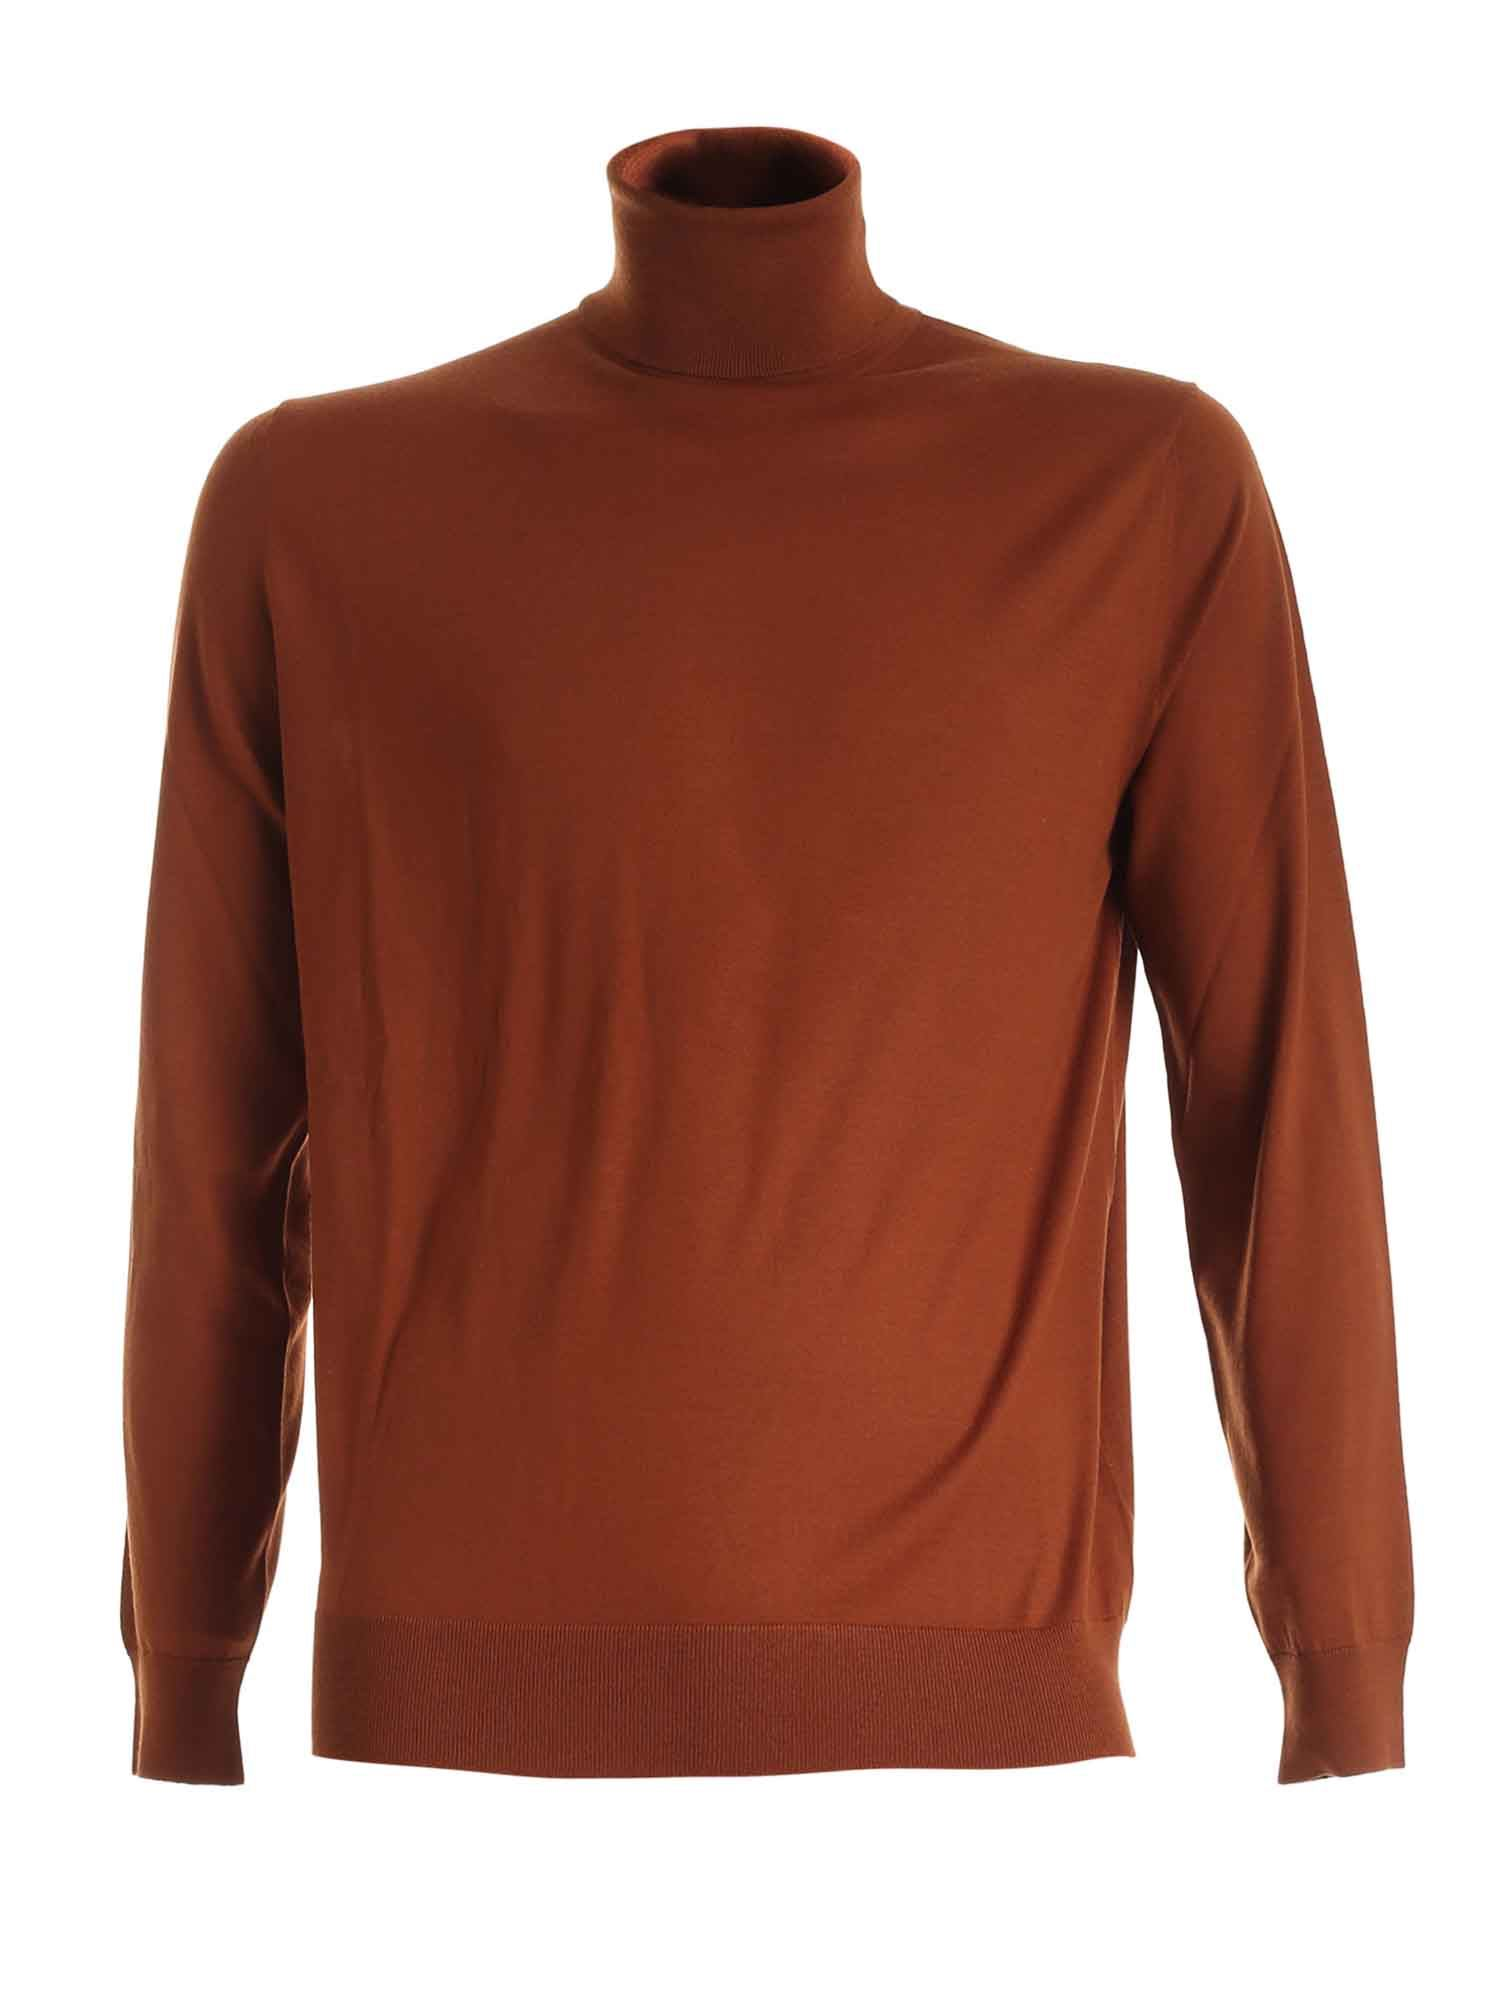 Prada Clothing KNITTED TURTLENECK IN RUST COLOR